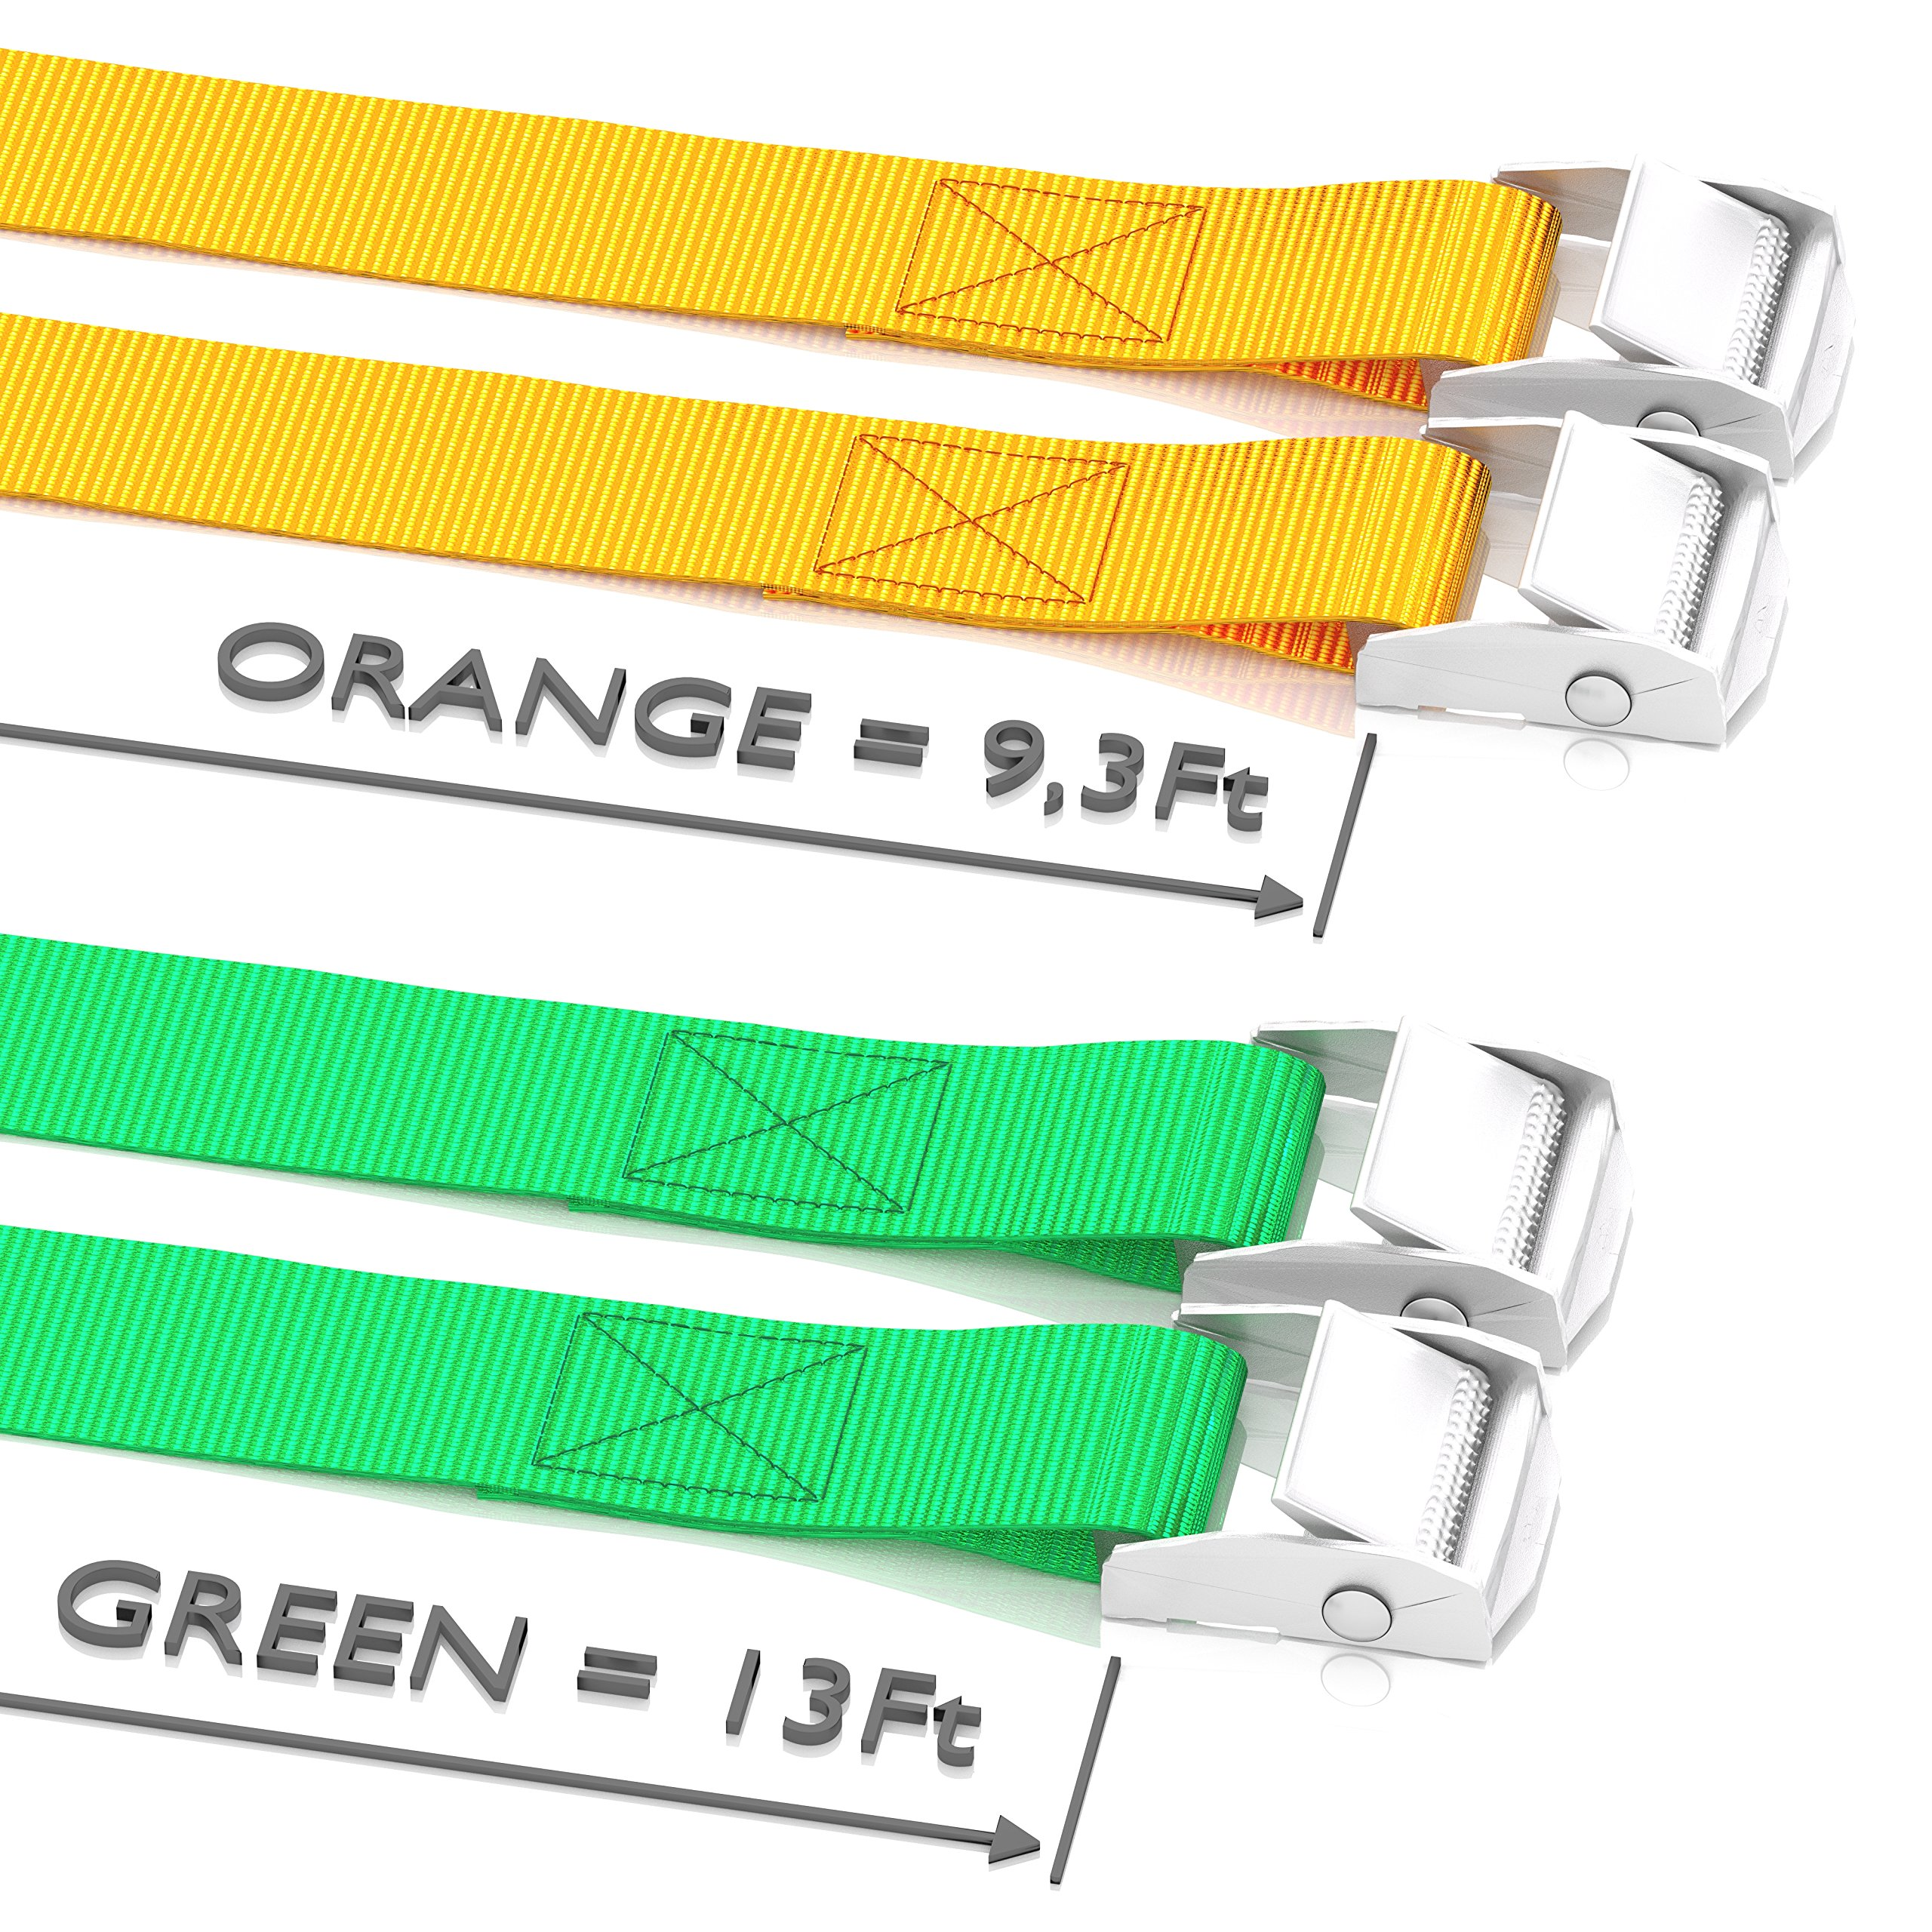 WowThings! Long Tie Down Car Straps - Lashing Cam Lock Metal Buckle Strap - Securing Adjustable Cargo Tie Downs For Roof Rack, Kayak, Canoe, Boat, Up To 600lbs, 4 Pack